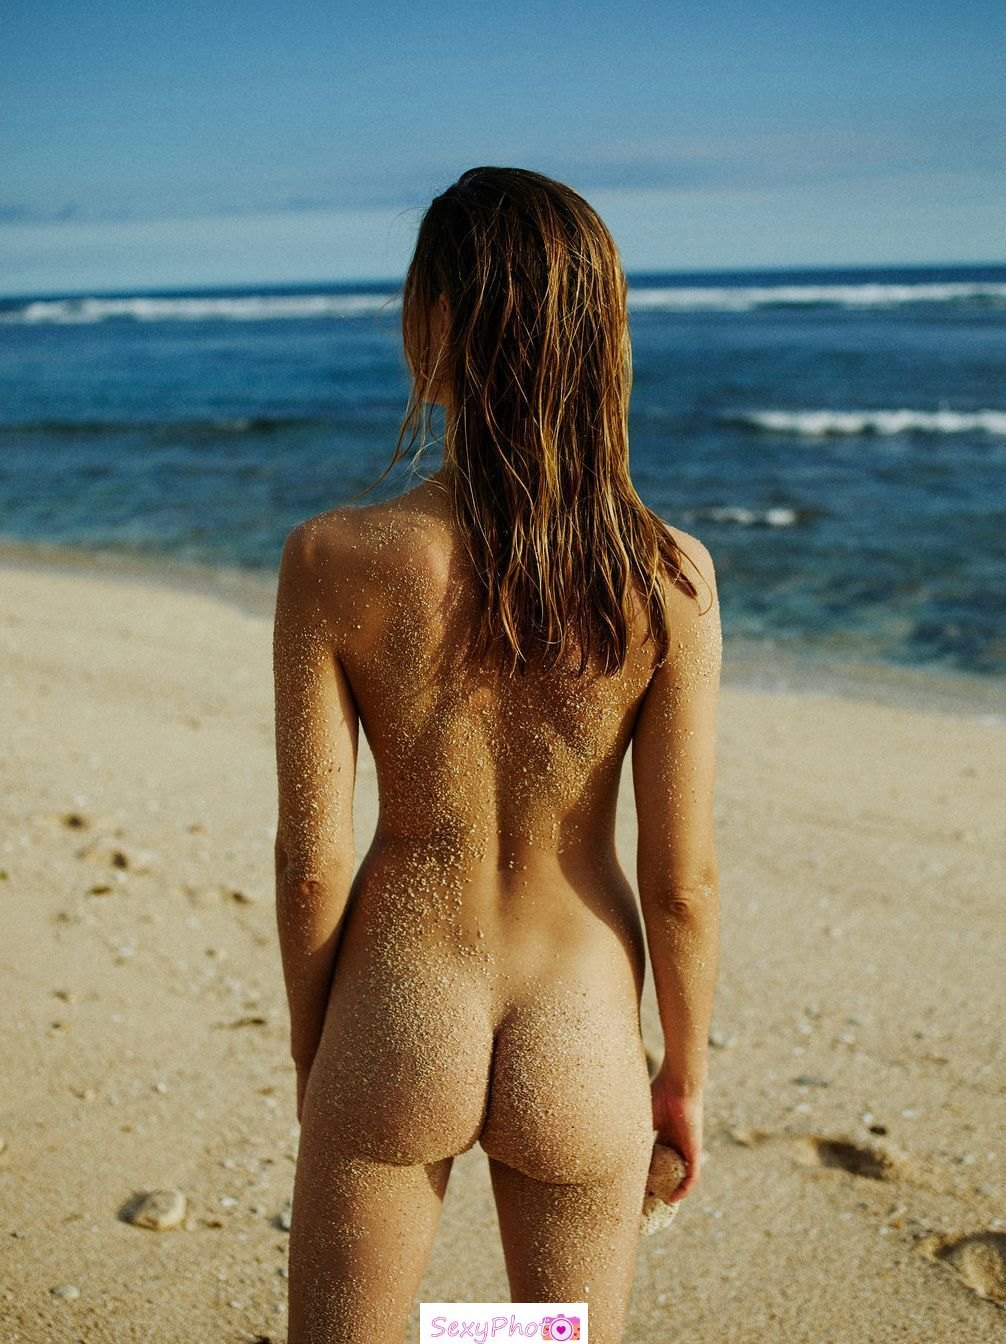 Julija Steponaviciute nude ass on a beach